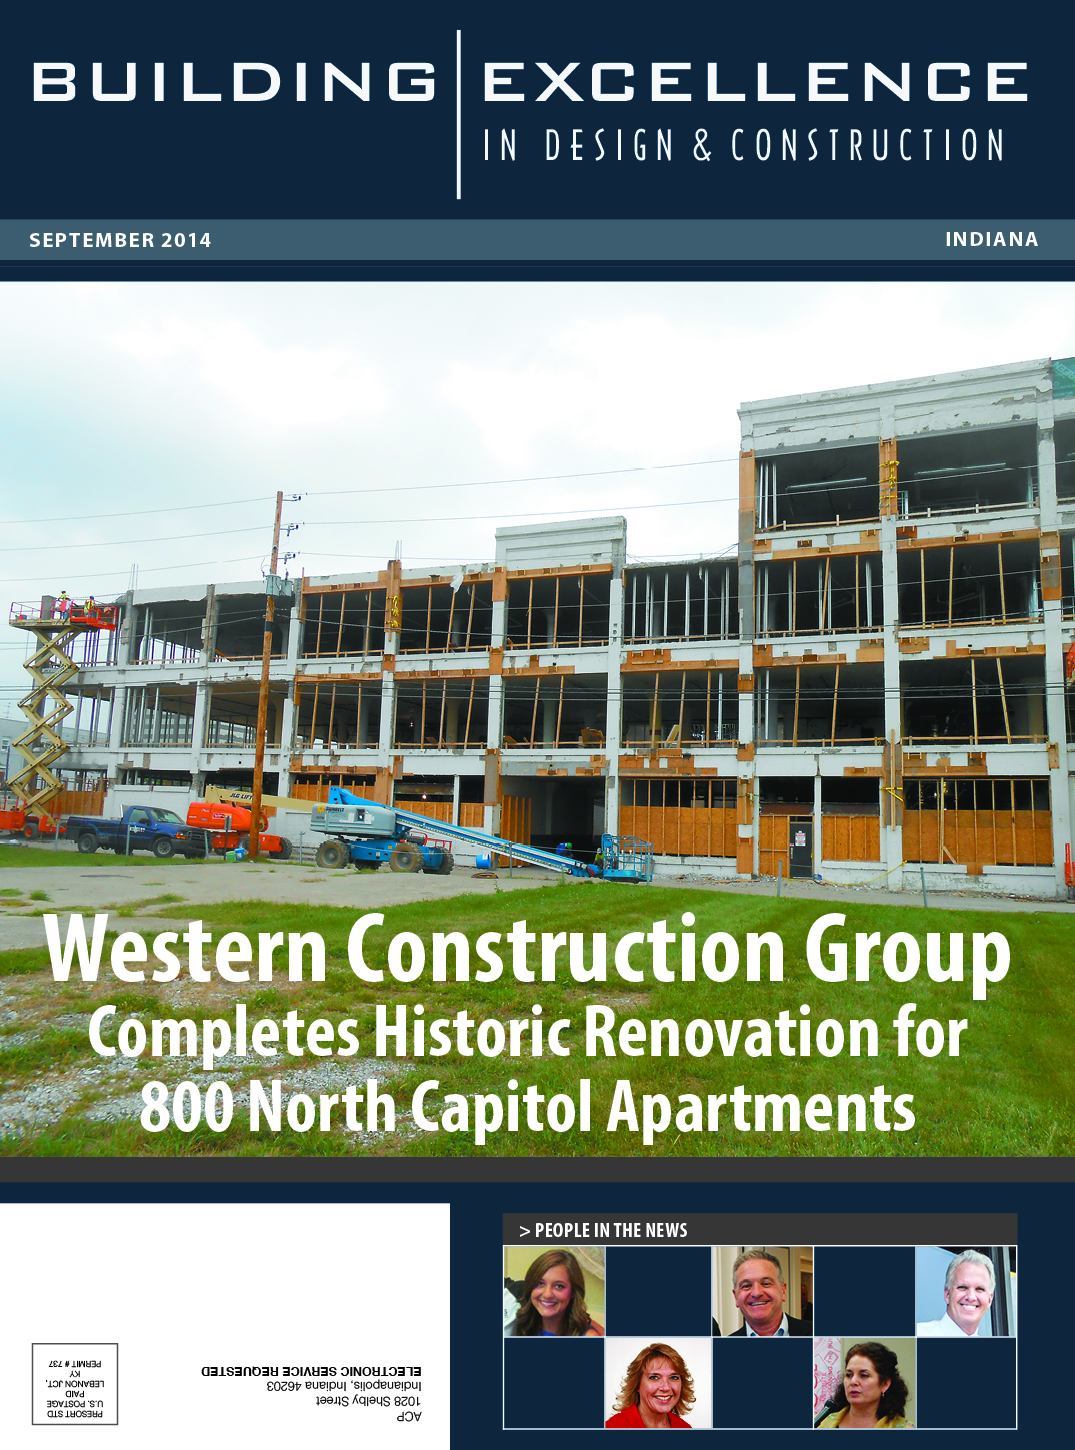 Western Construction Group Completes Historic Renovation for 800 North Capitol Apartments